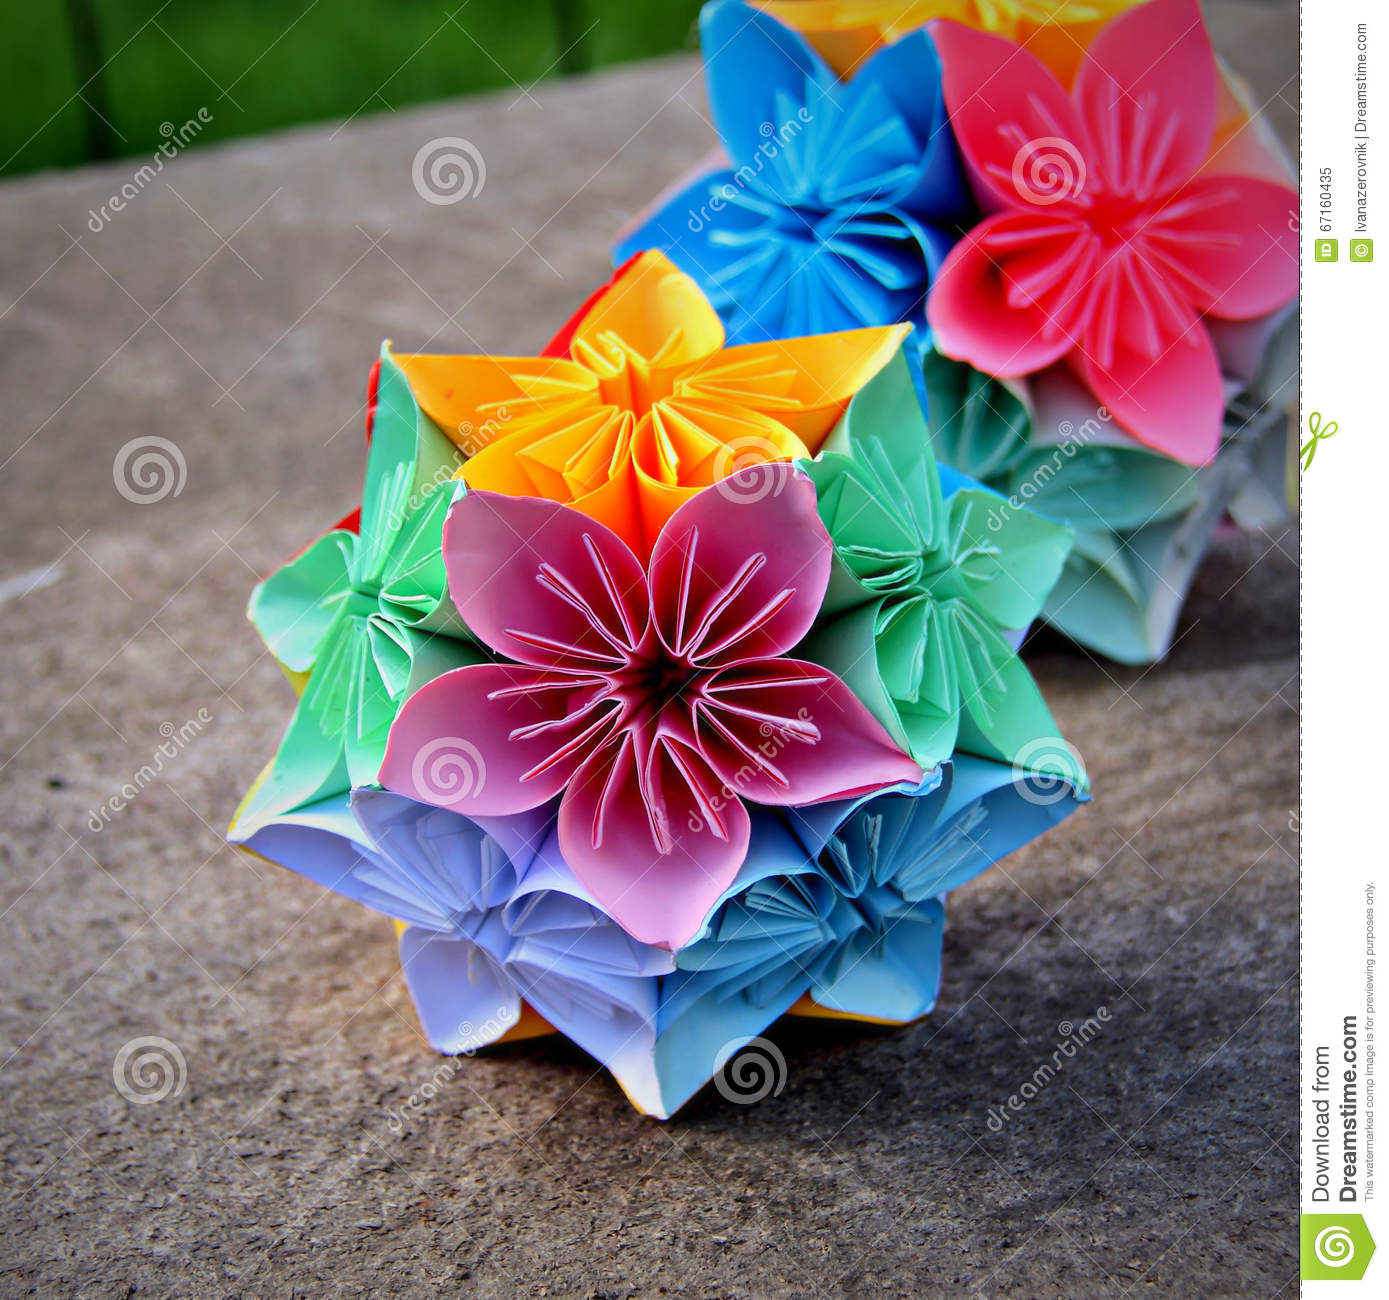 Decorative Kusudama Flower Balls Stock Image Image Of Home